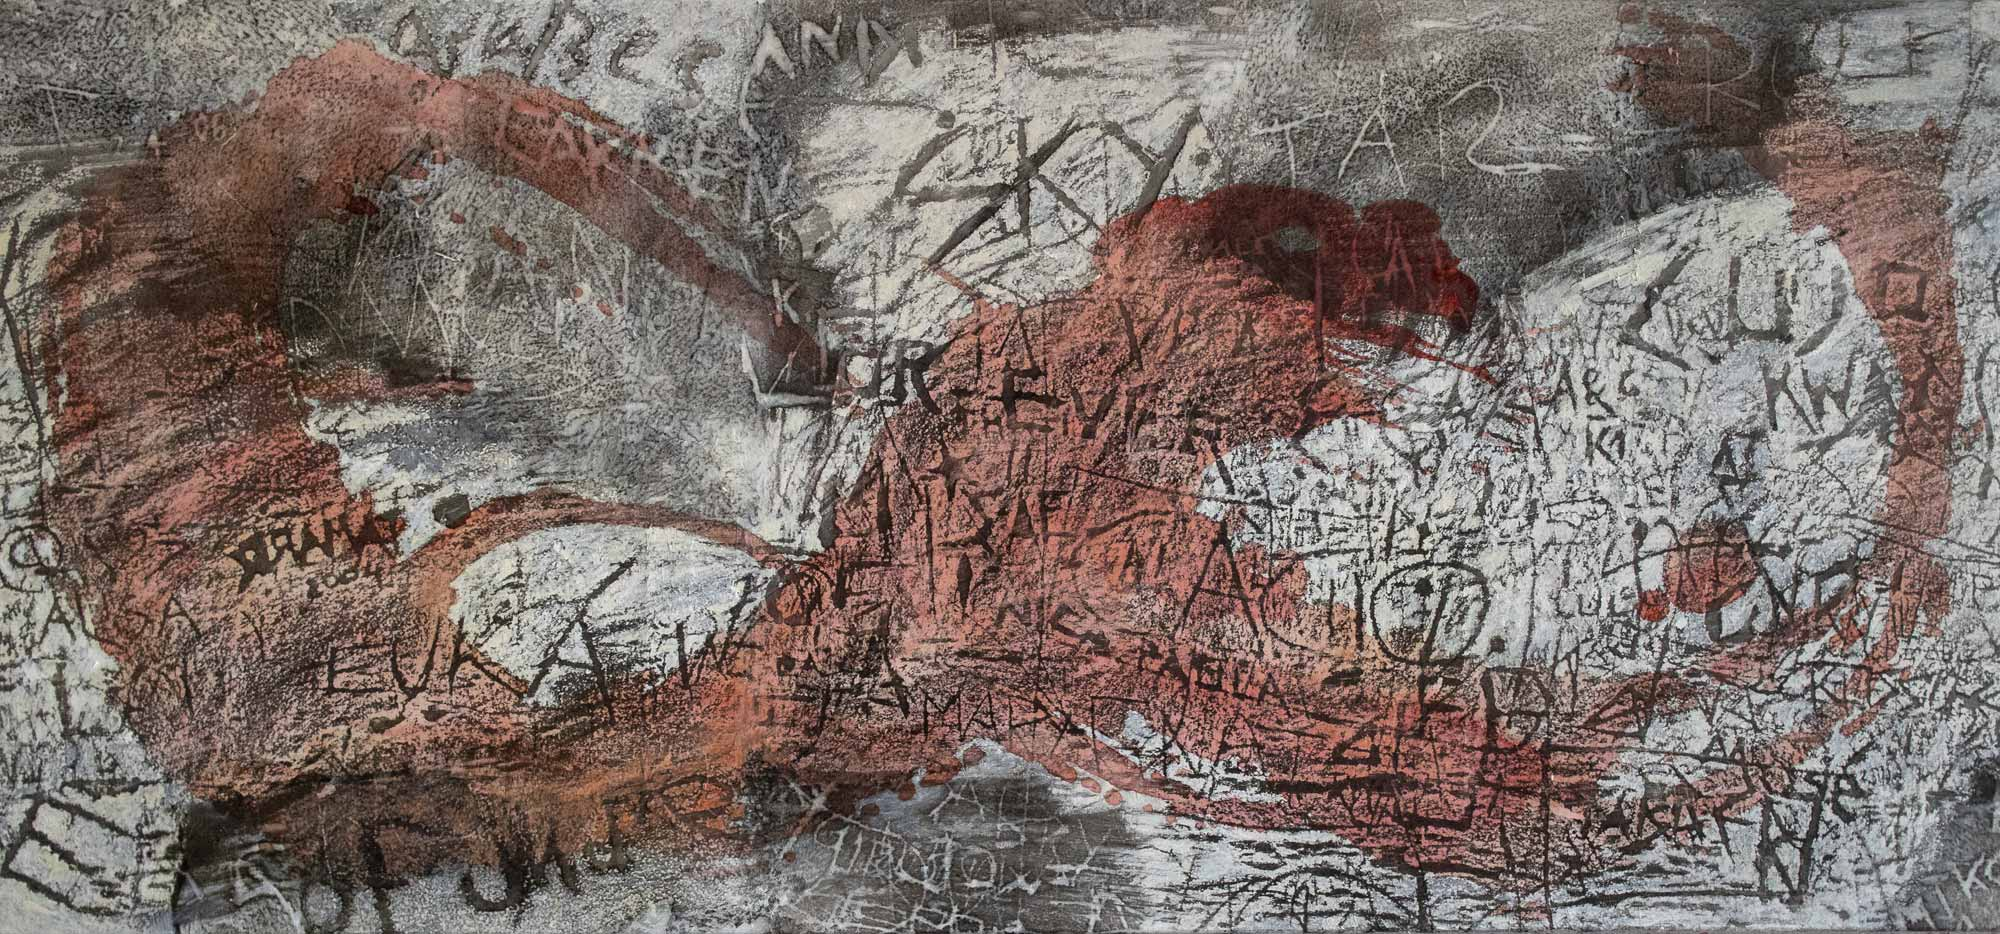 Nadia_Kaabi-Linke, Santa Margarita, 2019, transfer print, mixed media 90 x 230 cm; photo: Timo Kaabi-Linke